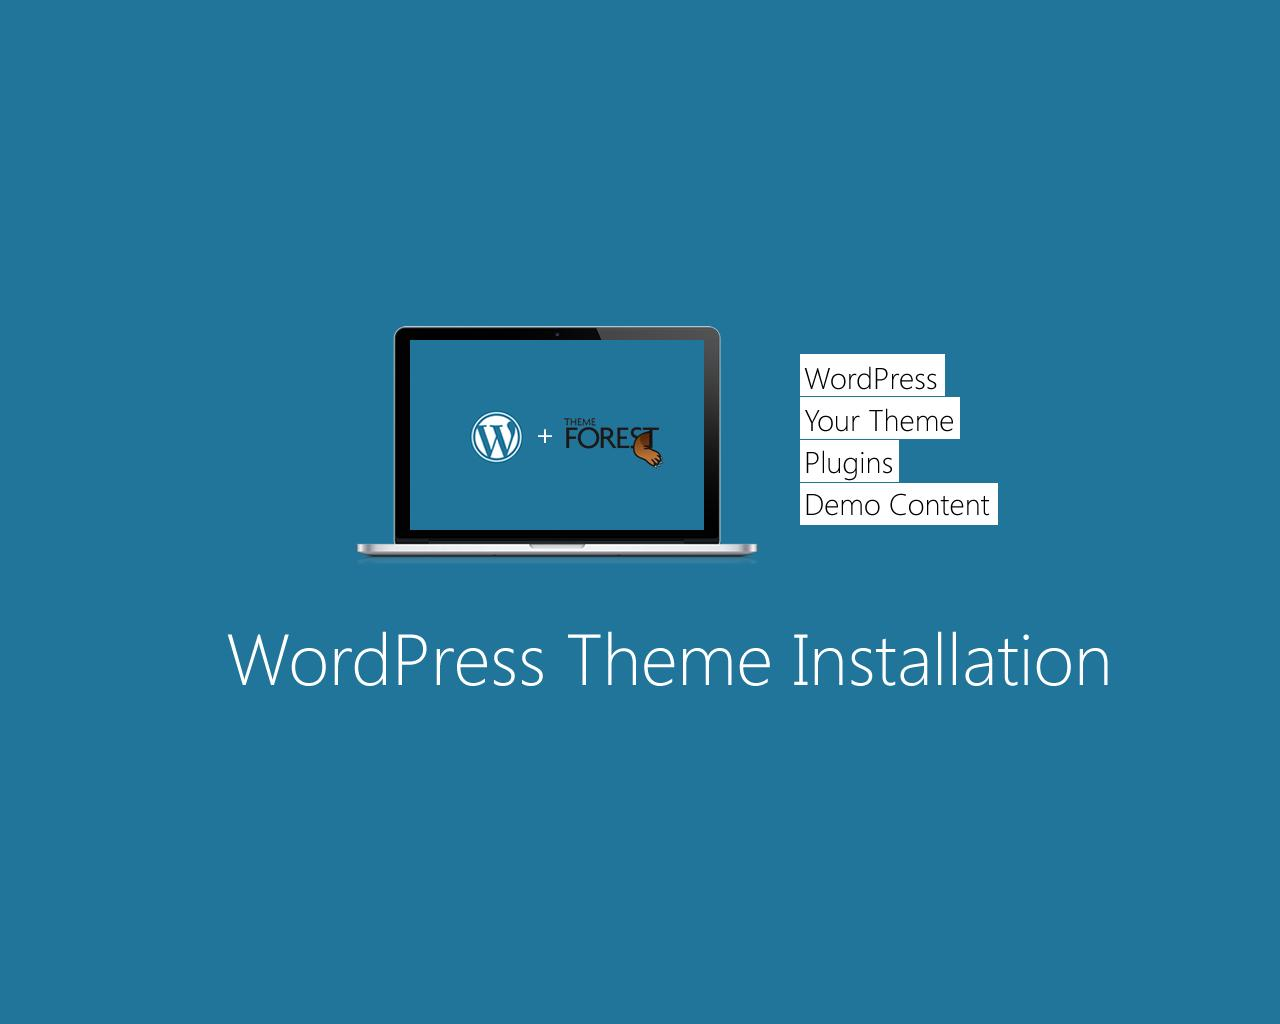 WordPress Theme Installation  by sympleweb - 63229